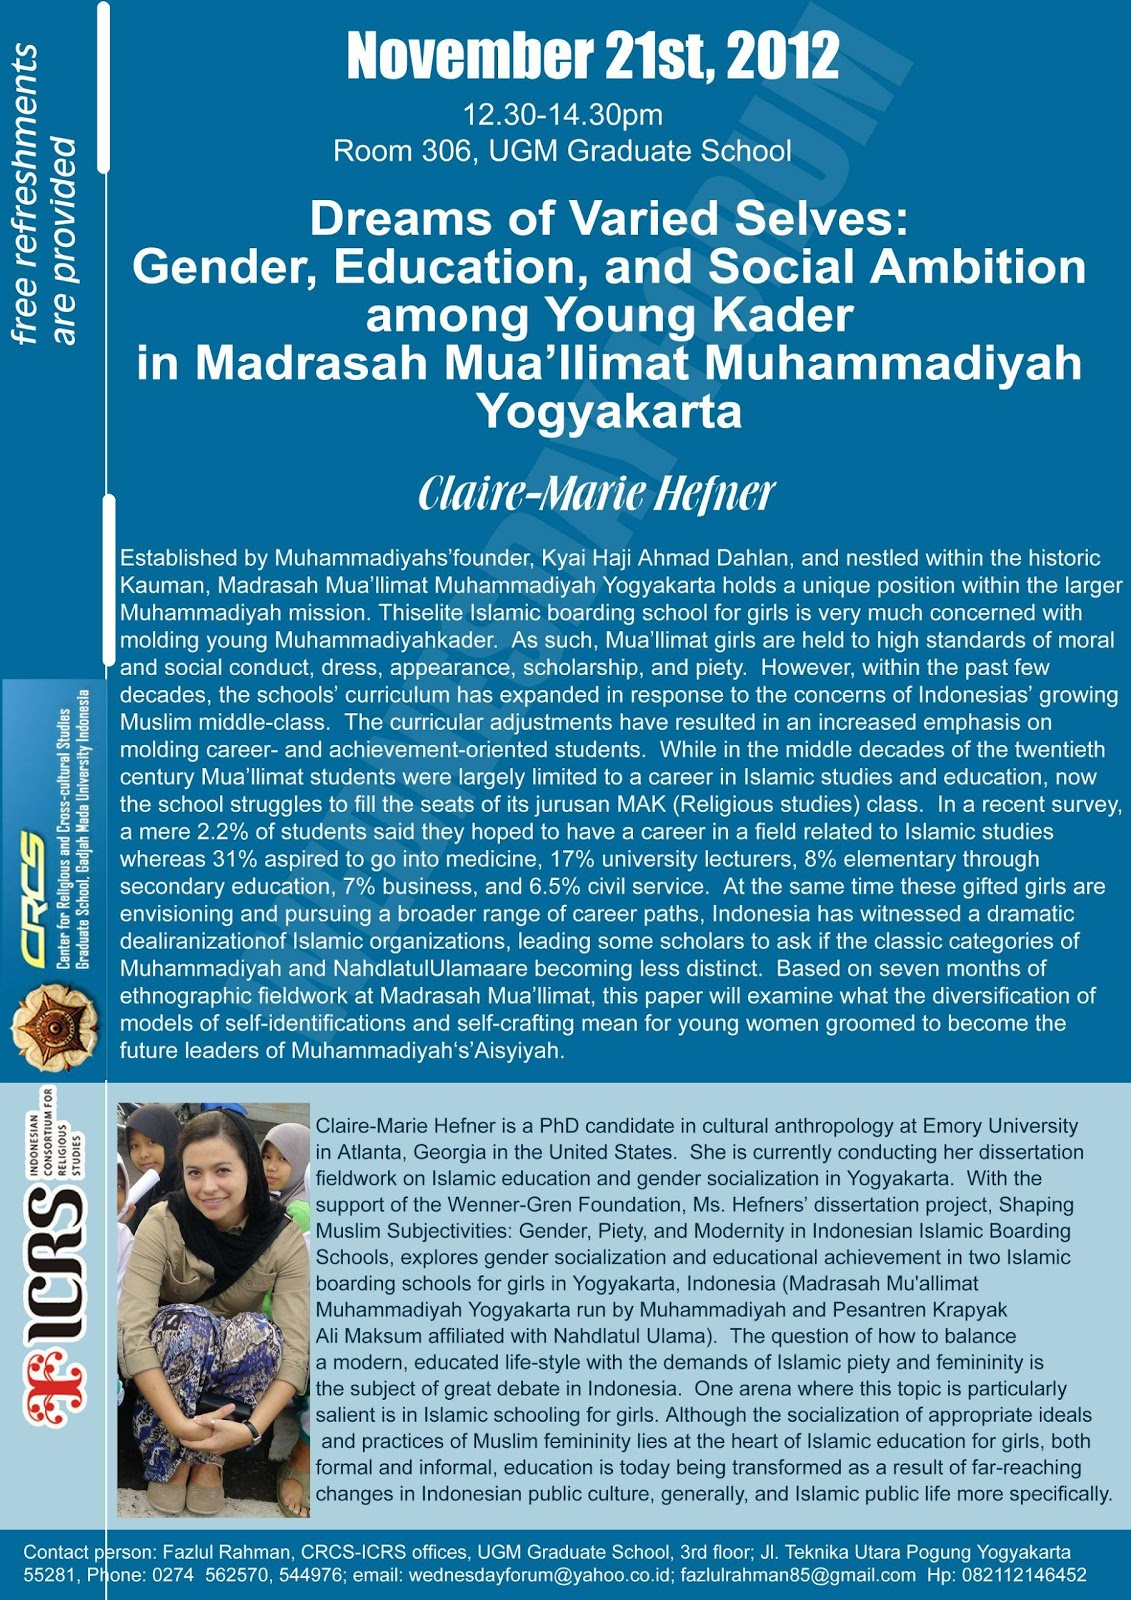 educational leadership phd thesis unpublished Peer-review under responsibility of academic world education and research center doi: 101016/jsbspro201504022 5th world conference on learning, teaching and educational leadership, wclta 2014 the impact of leadership styles of school administrators on affecting teacher effectiveness saowanee sirisookslip a , wallapha ariratana a , tang.